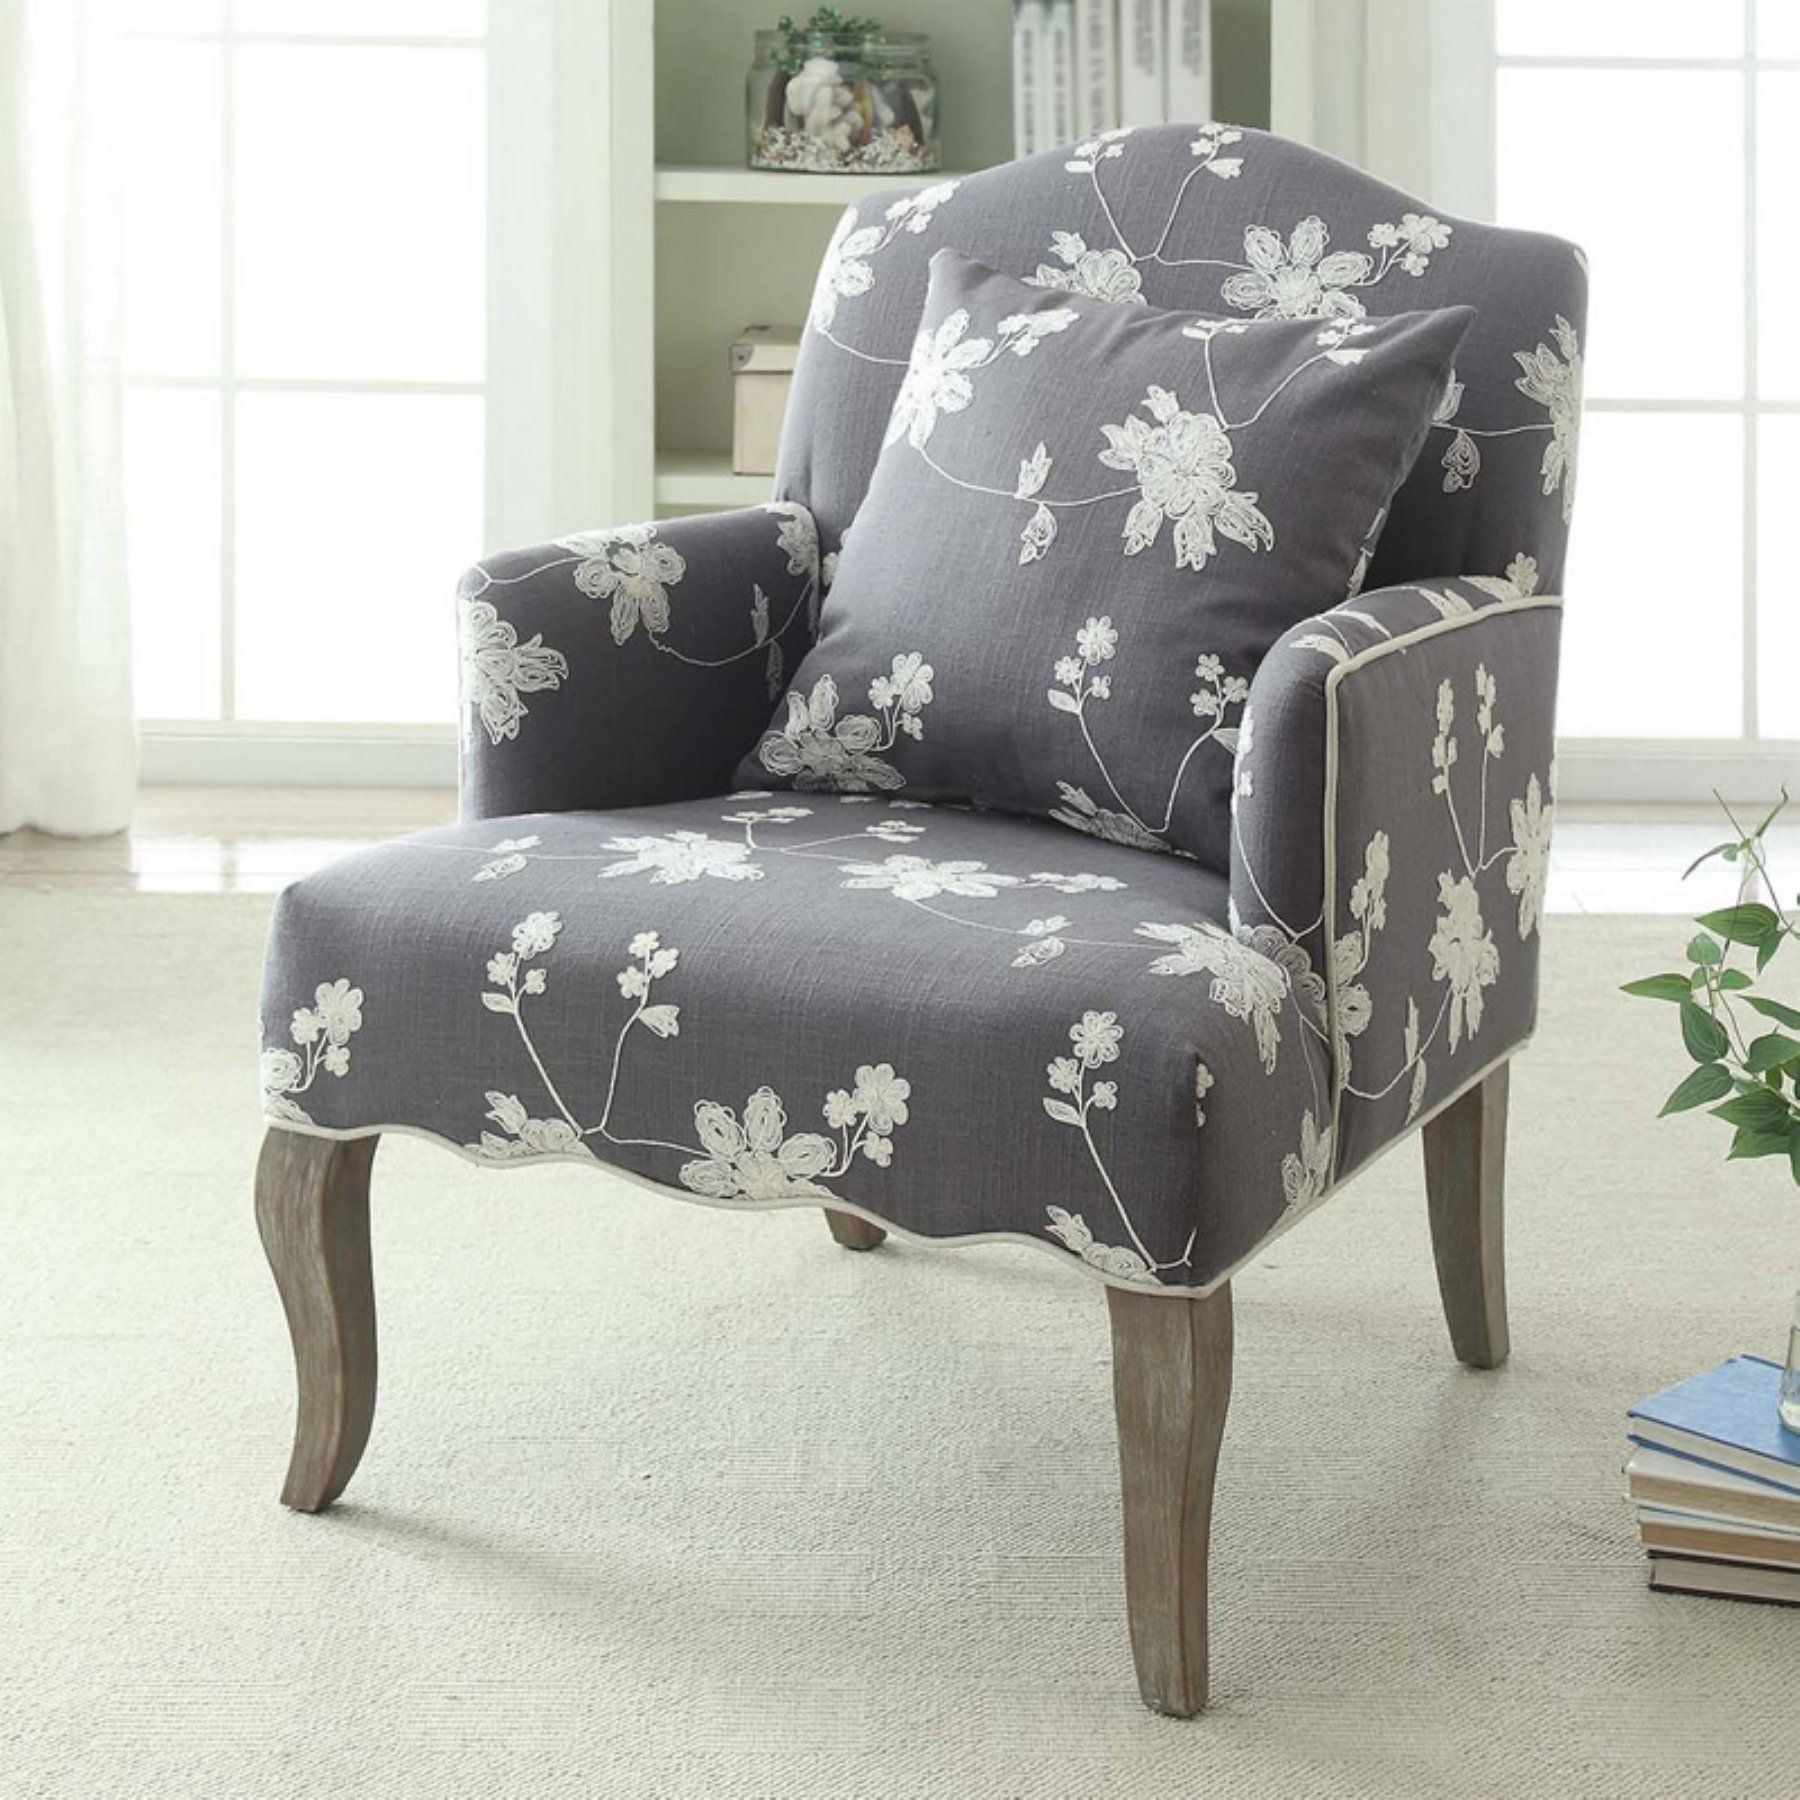 Linon Floral Arm Chair 368312gry01u Living Room Chairs